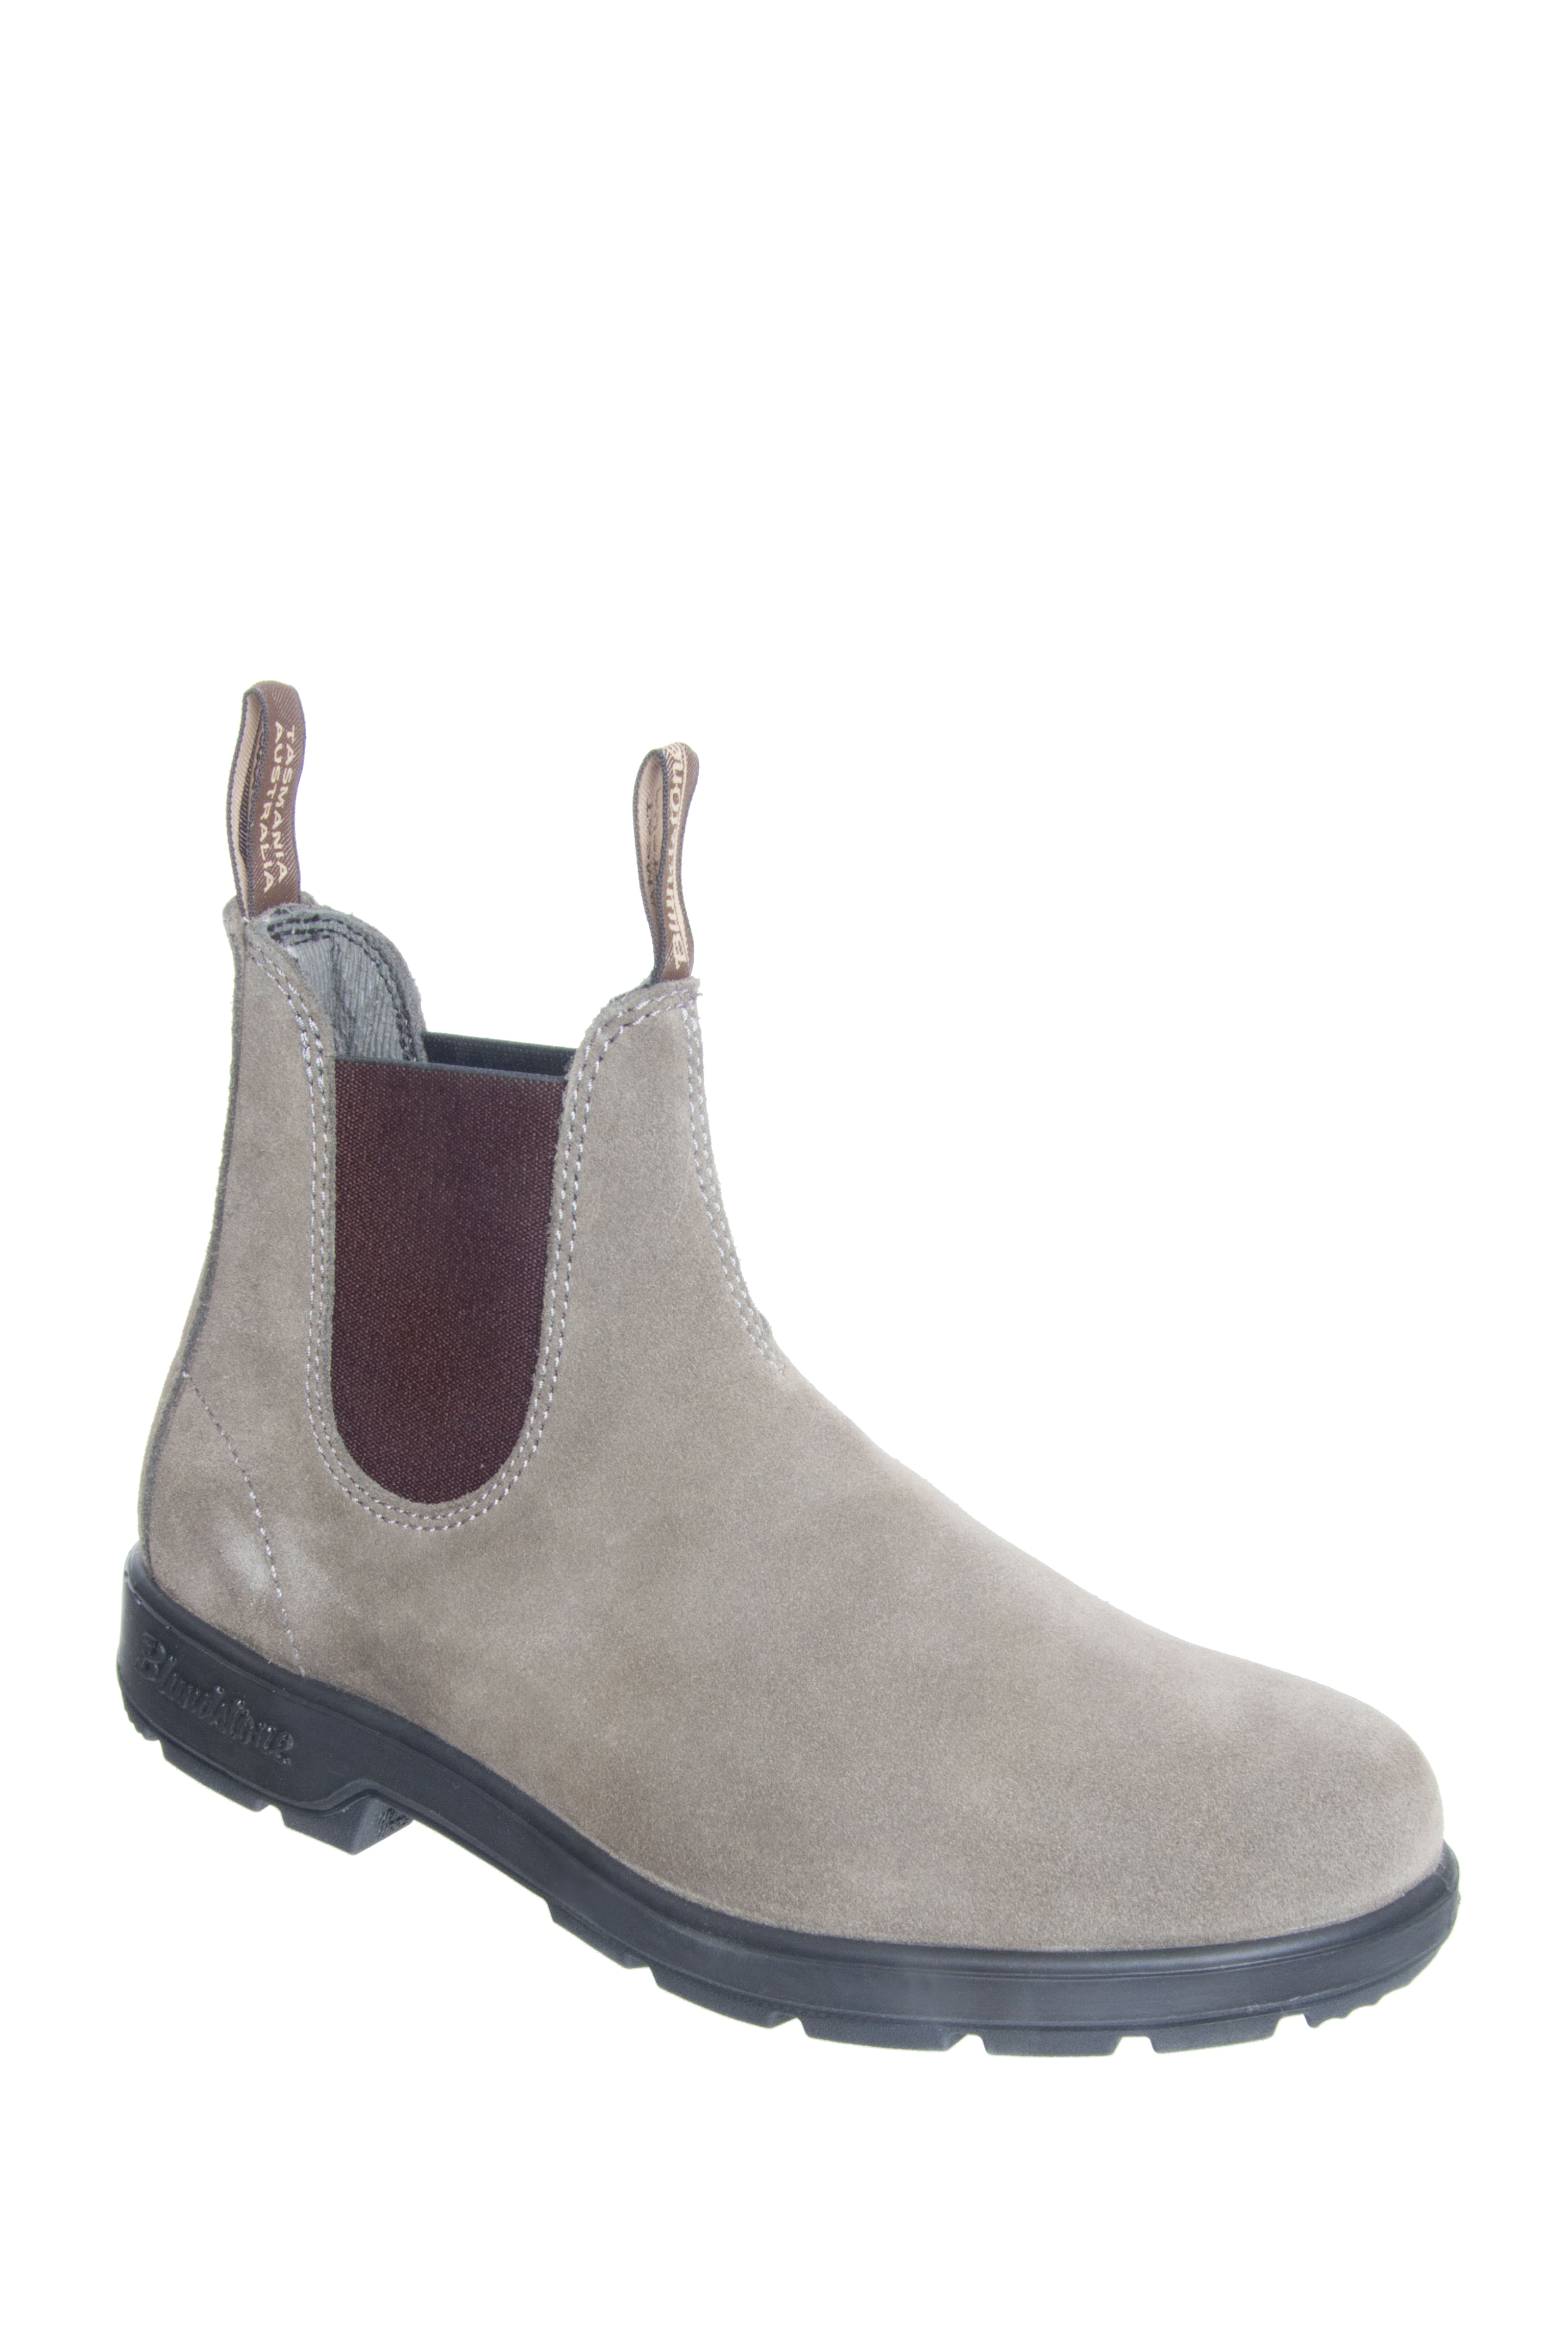 Blundstone Unisex Suede Mid Top Boots - Olive Suede